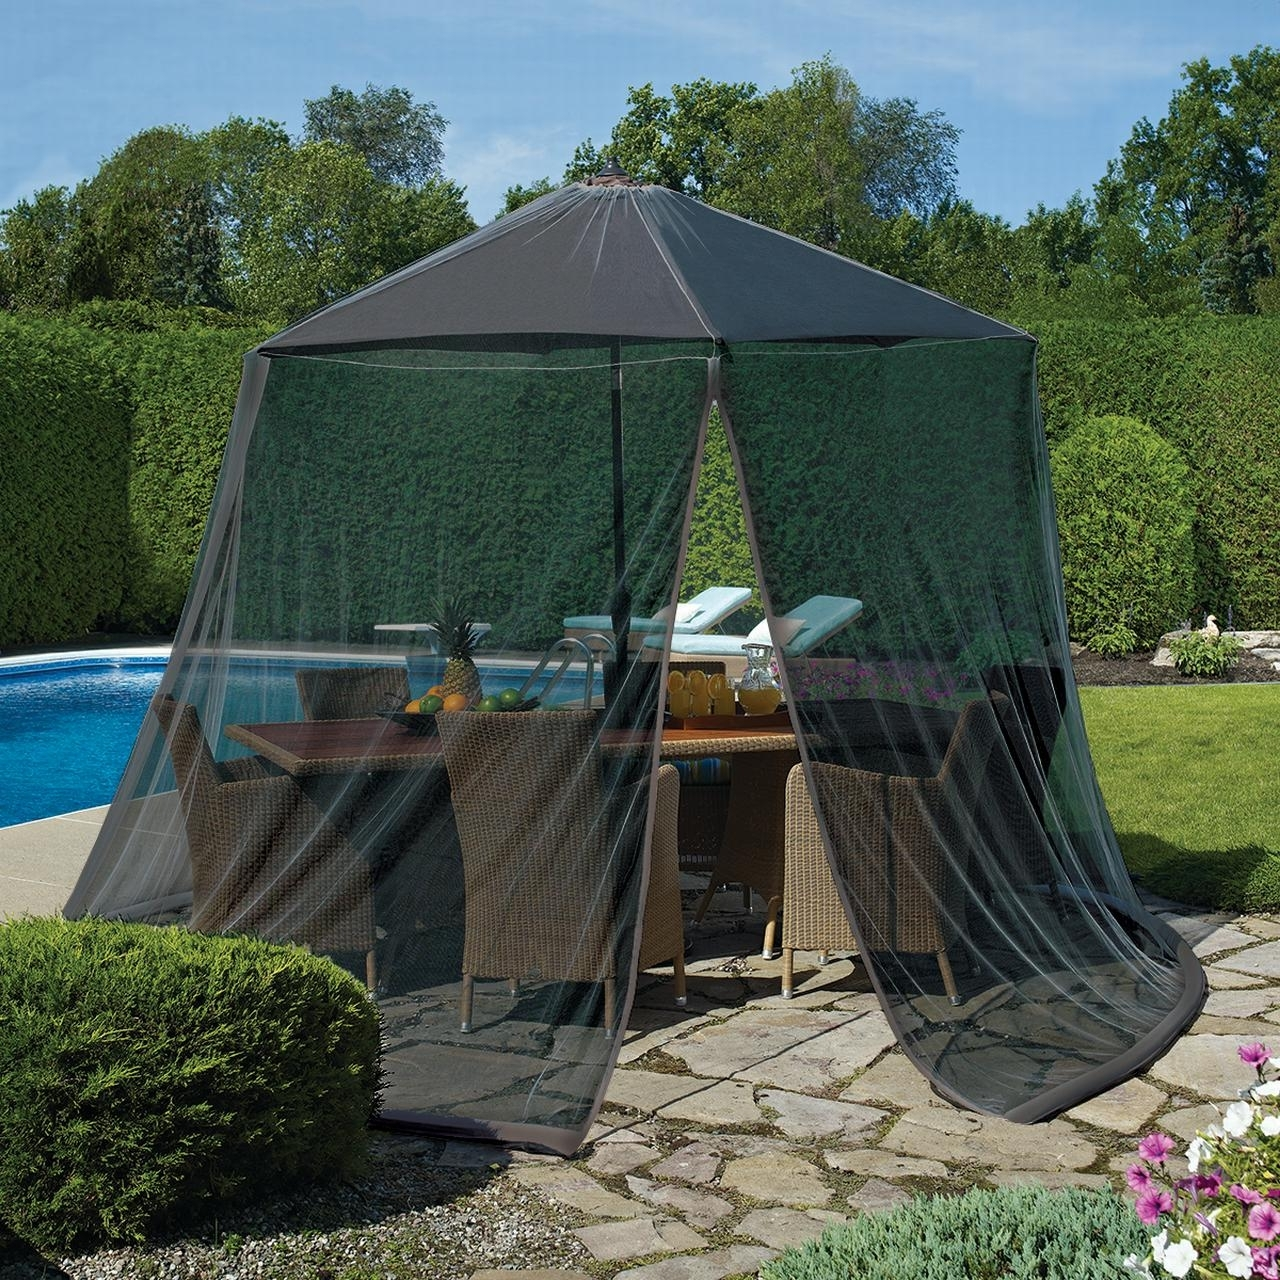 Best And Newest Mosquito Net Tent With Repellent, Screen Patio Umbrella Table Net With Patio Umbrellas With Netting (Gallery 14 of 20)